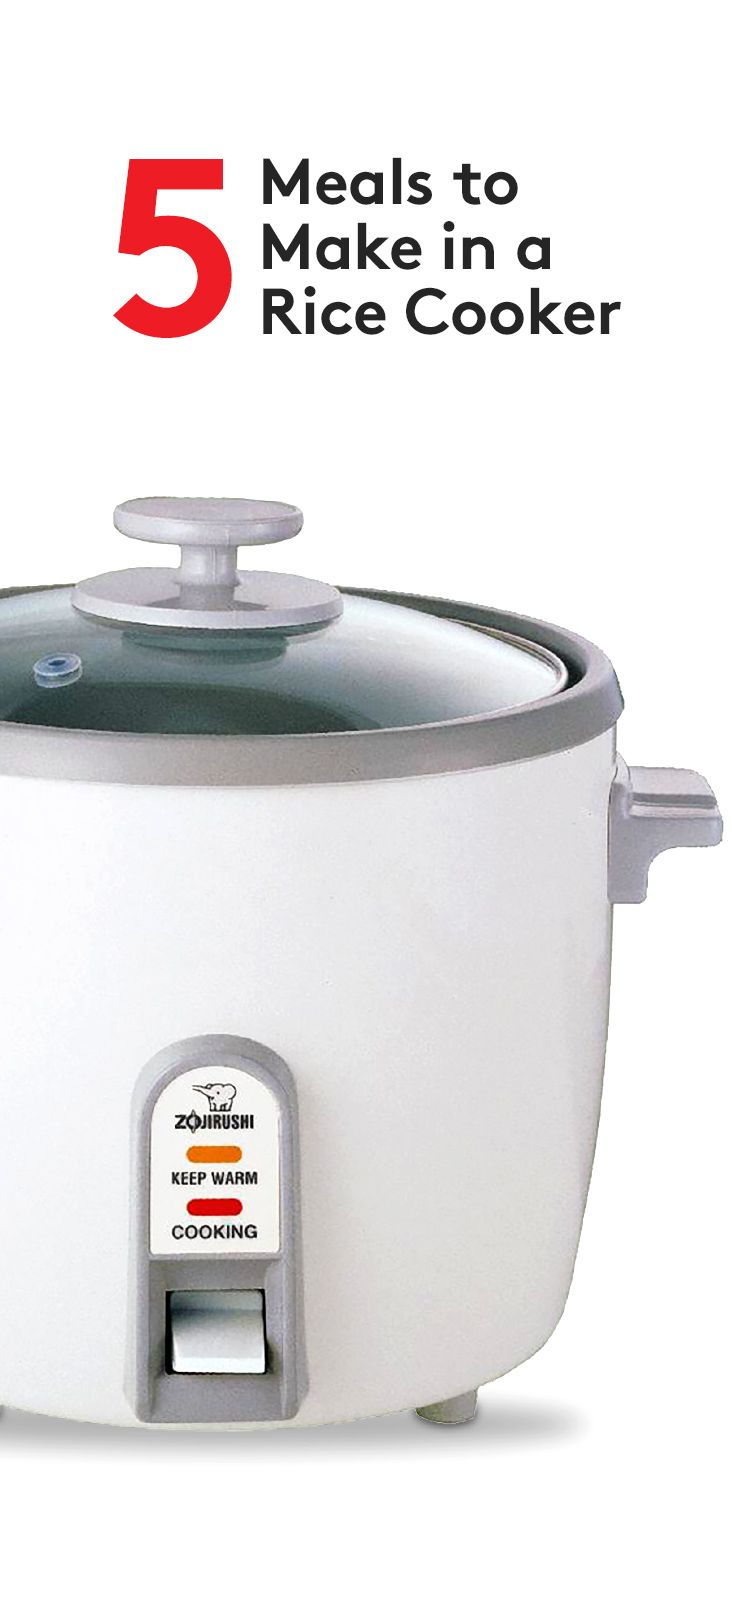 Your rice cooker has hidden talents--it can make breakfast, poach fruit, and even turn out risotto.